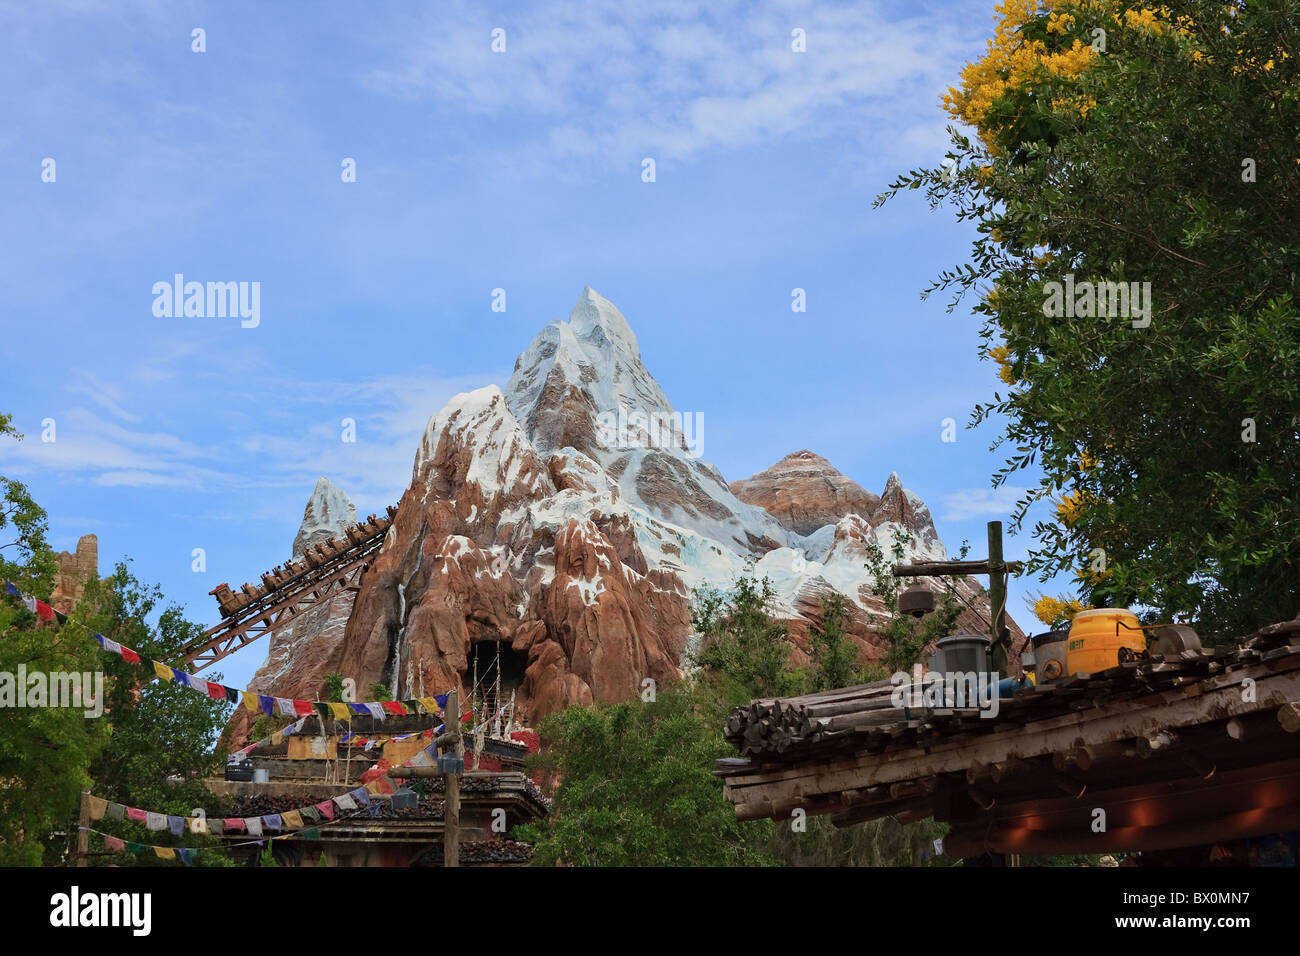 Expedition everest animal kingdom orlando florida view of expedition everest roller coaster ride seen from serka zong bazzar in disney world animal